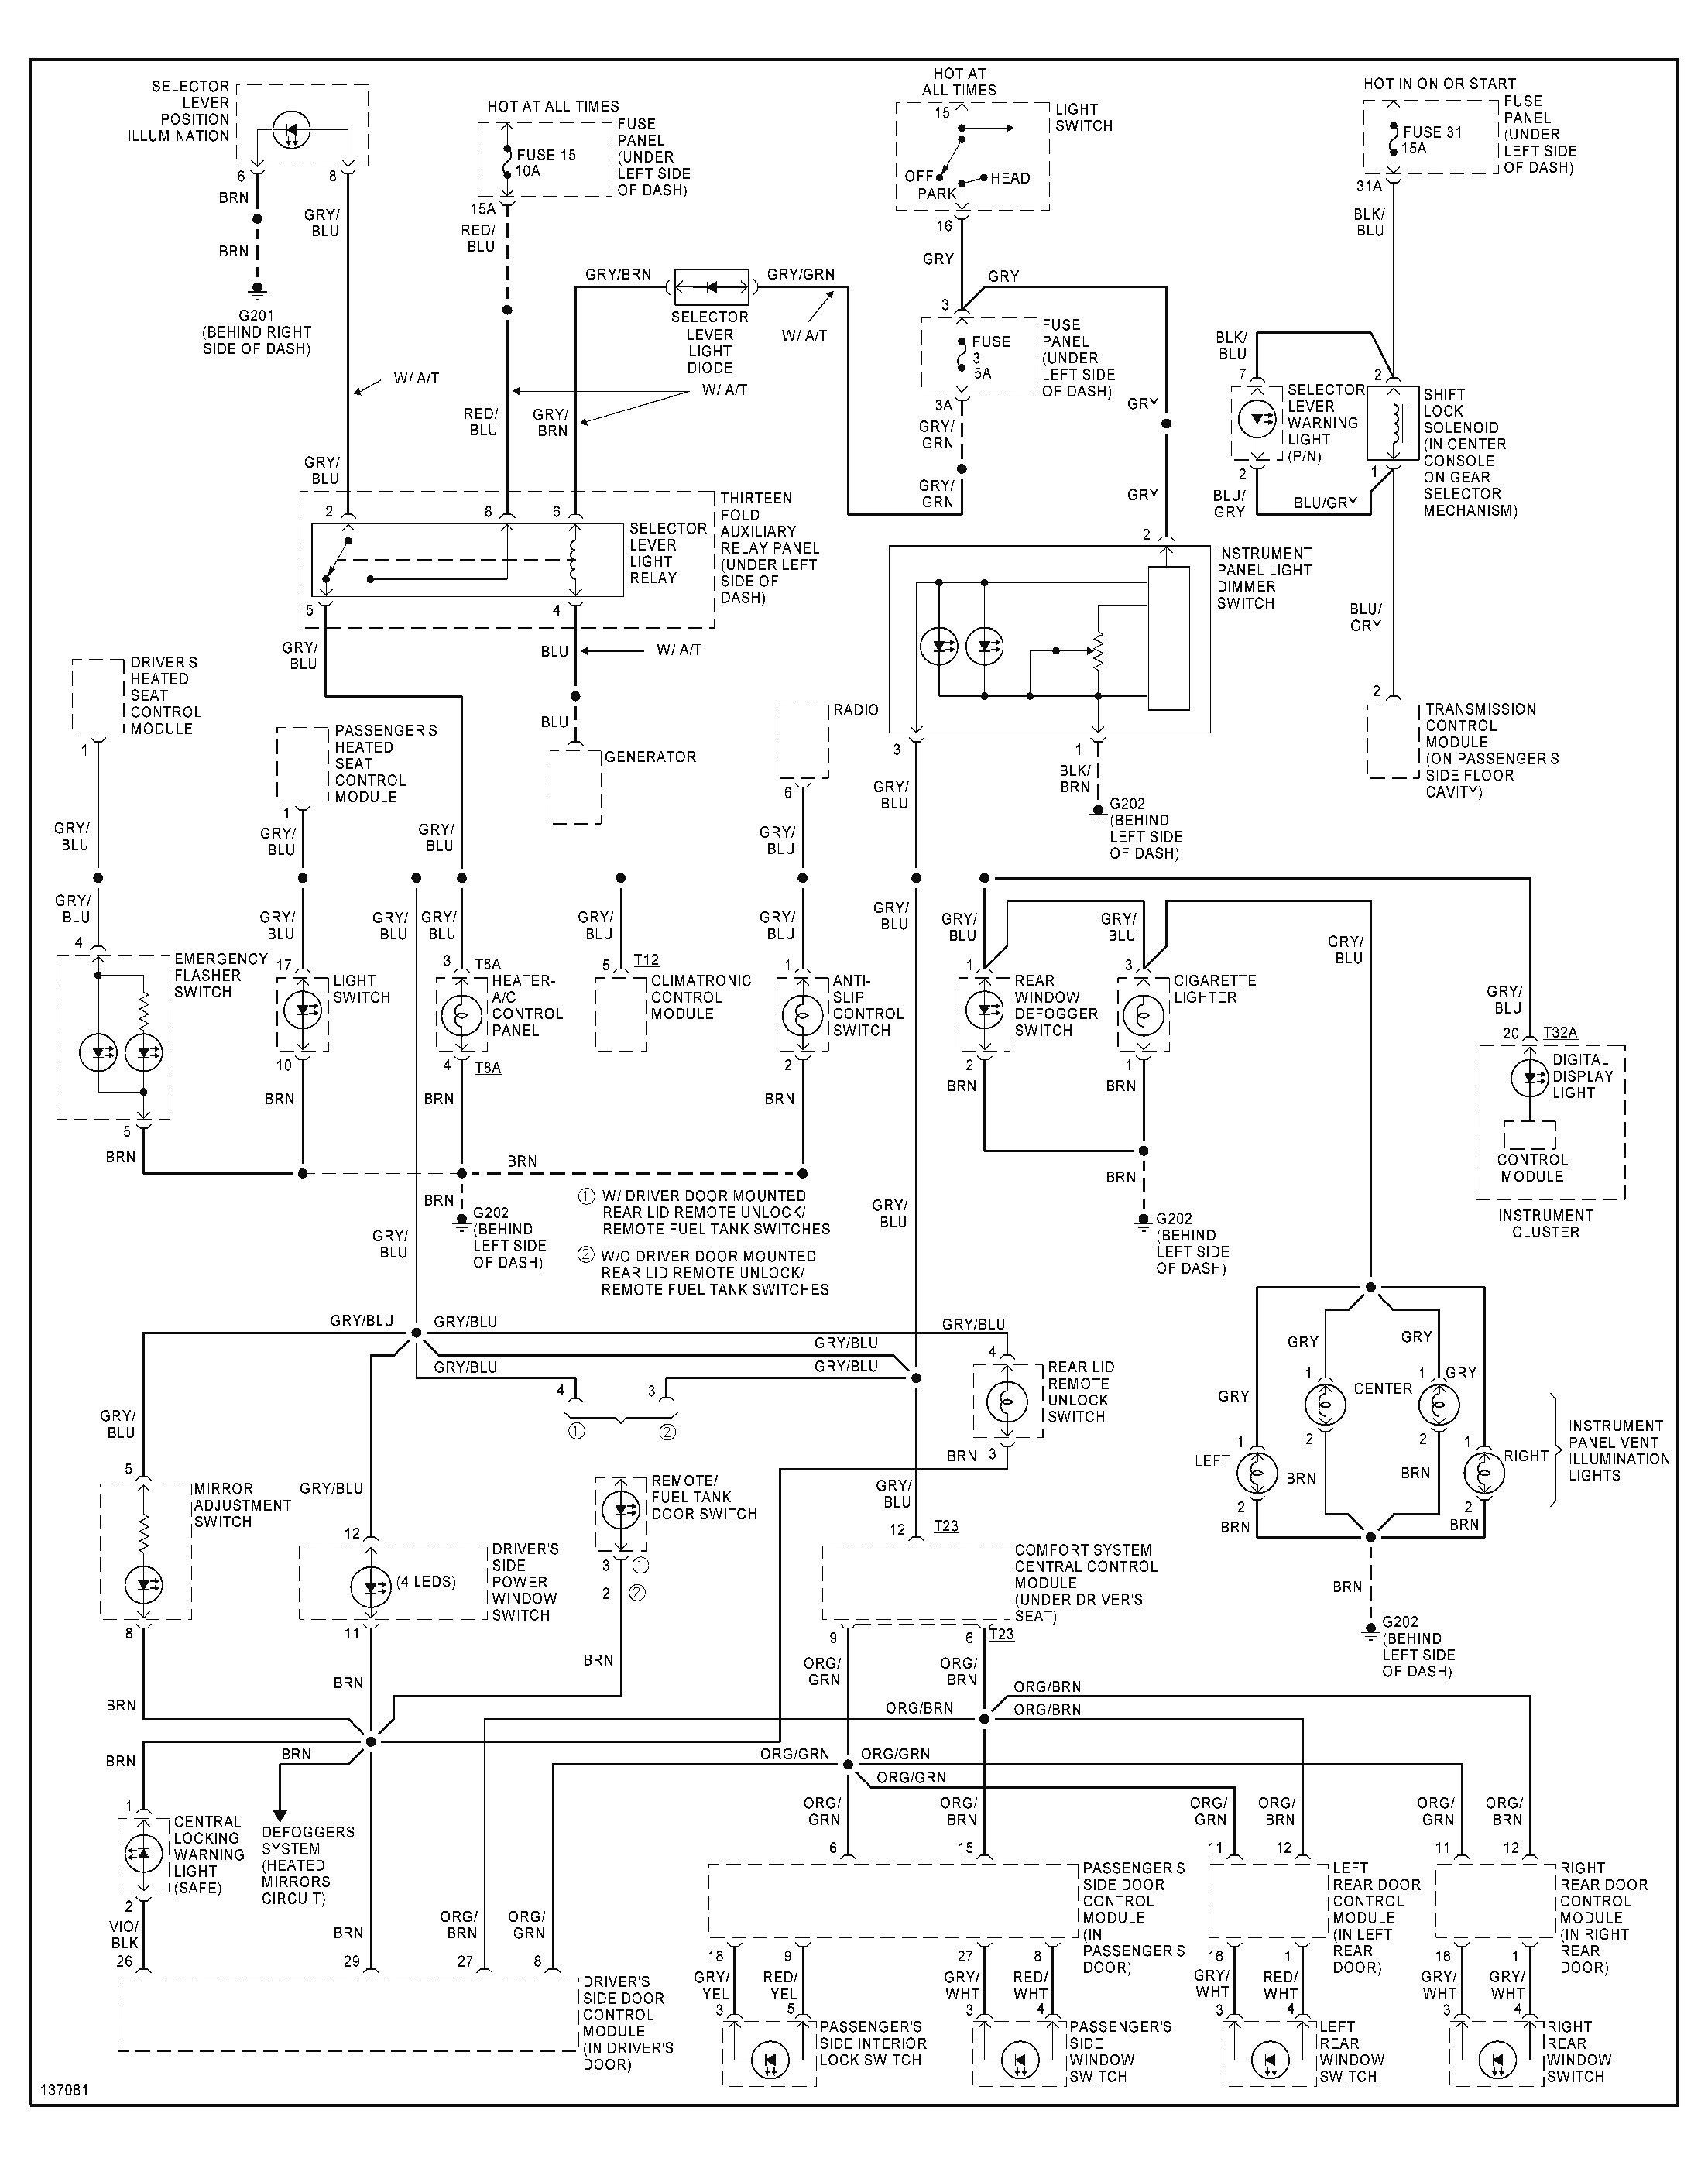 Unique 2004 Dodge    Ram    1500    Headlight       Wiring       Diagram        diagram     diagramsample  diagramtemplate